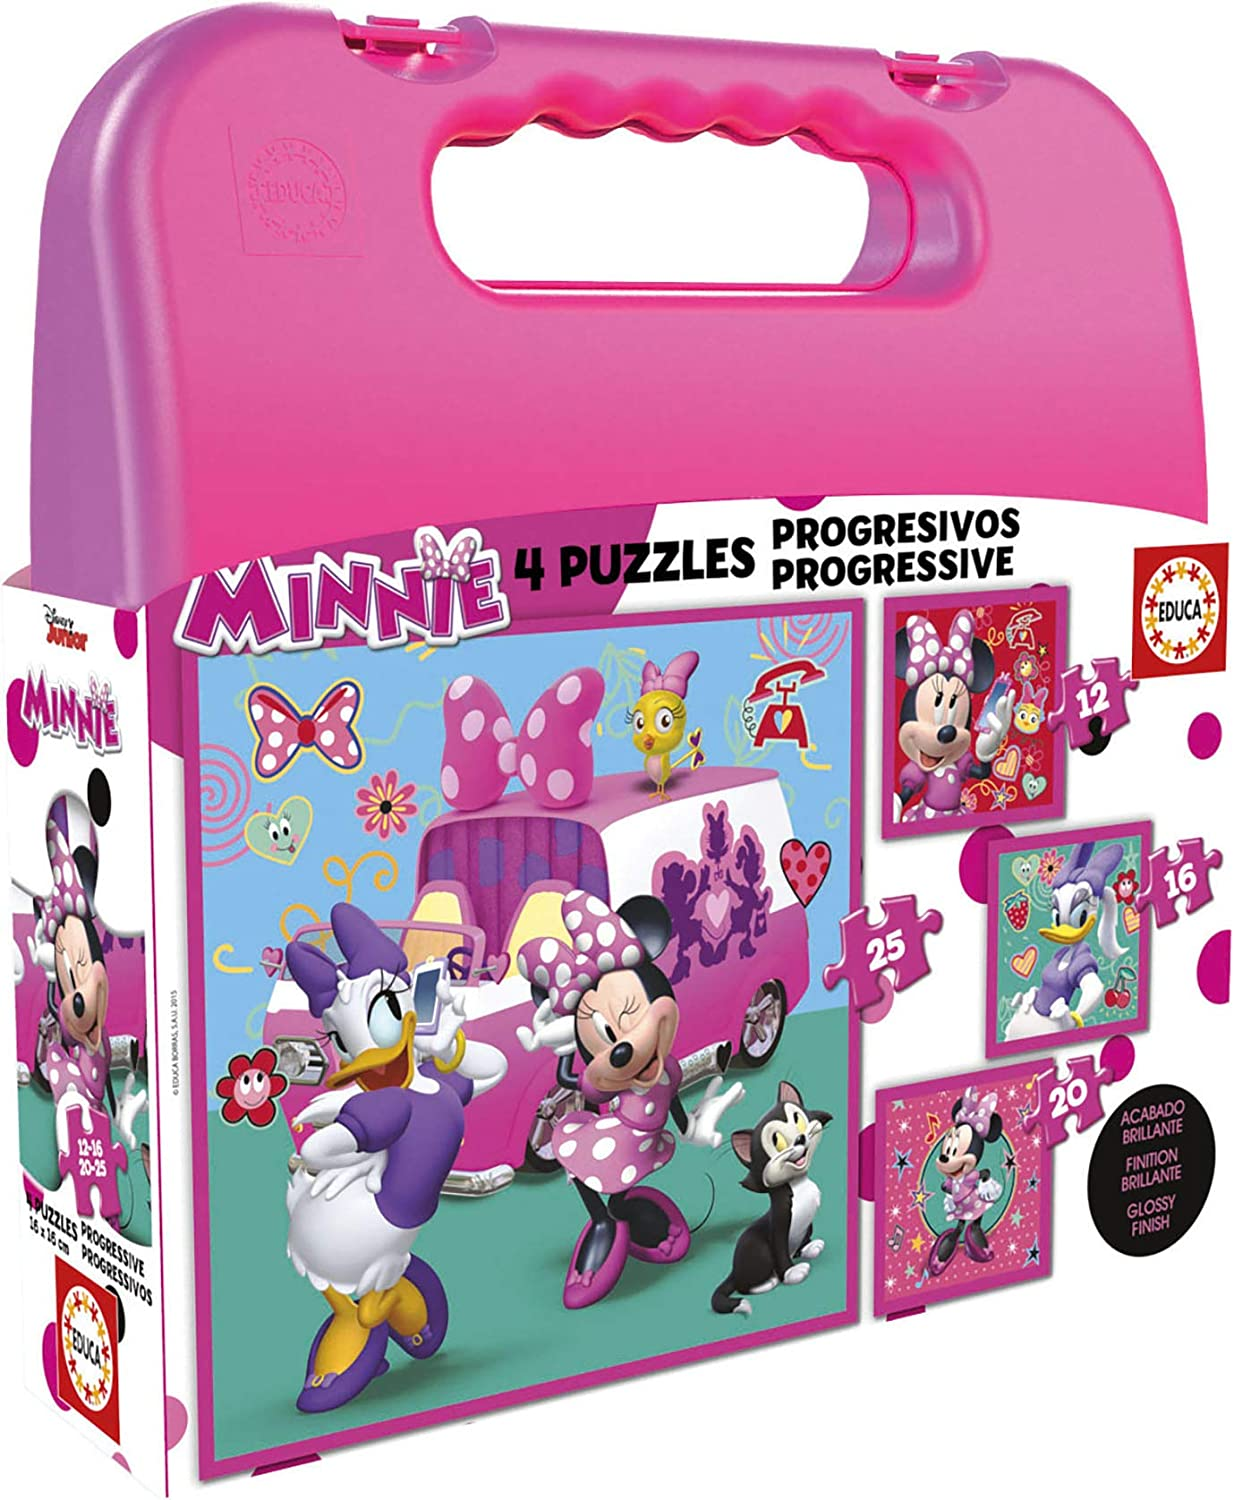 Educa Mickey and The Roadster Racers Maleta Puzzles Progresivos, multicolor, 16 Piezas (17638)